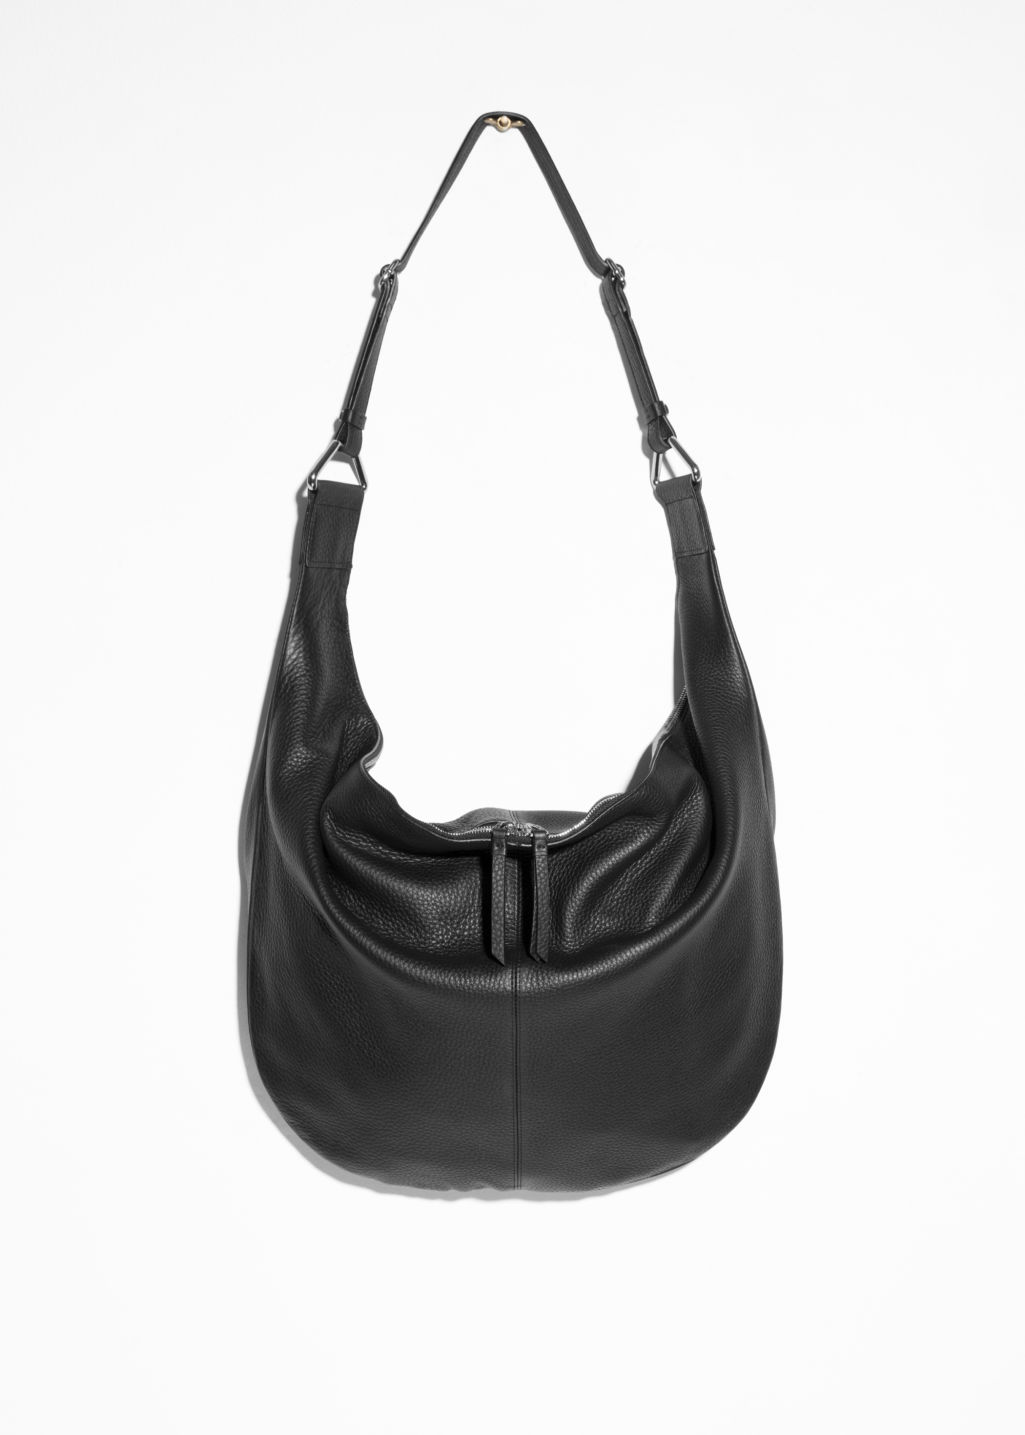 78025e660cf3 Leather Hobo - Black | £88.00 | Gay Times